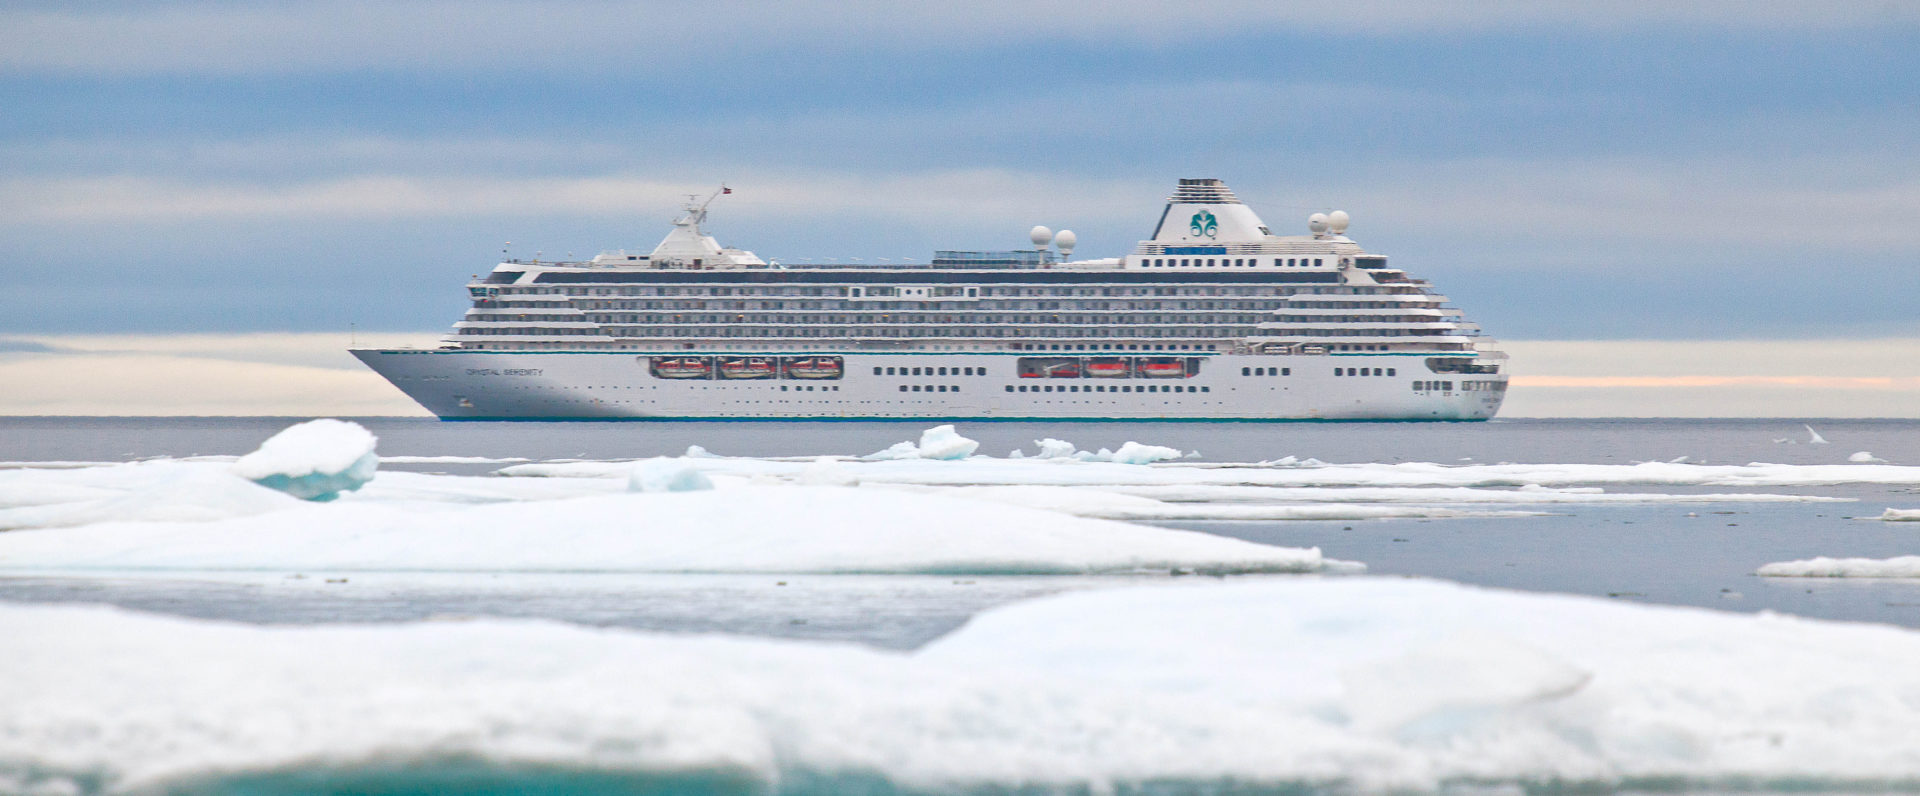 Evénéments - Page 2 Crystal-Serenity-in-Arctic_PP-1920x796